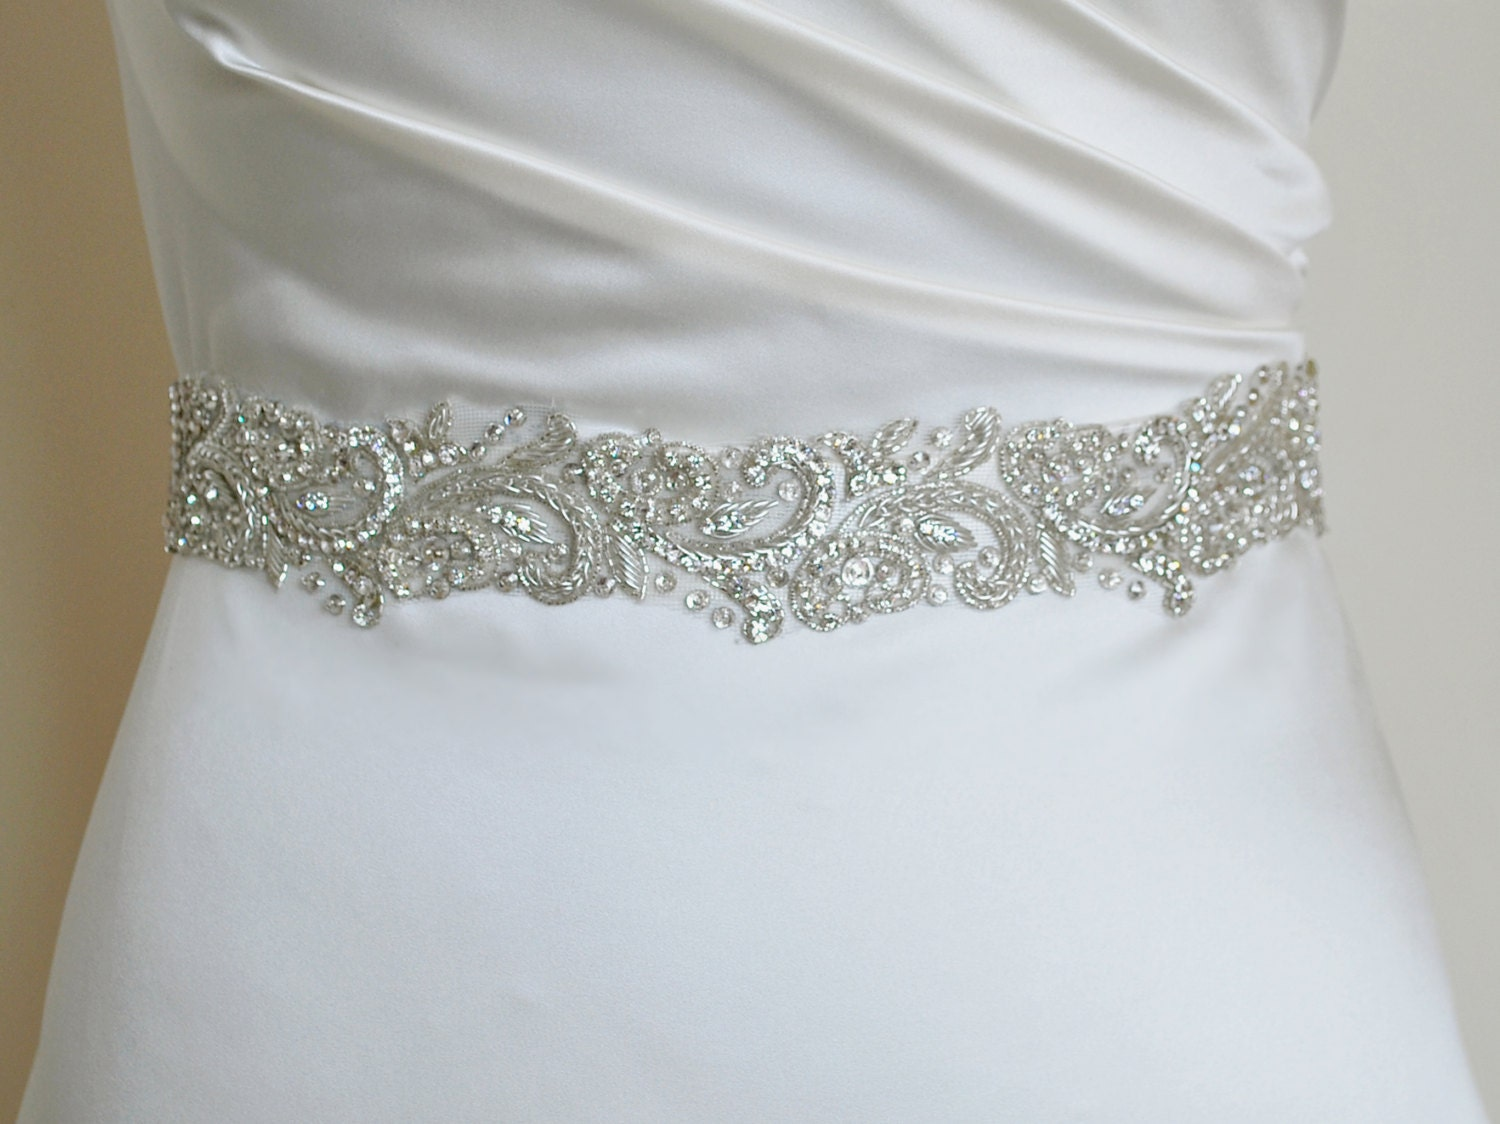 Luxury bridal belt silver wedding belt wedding dress for Belts for wedding dress